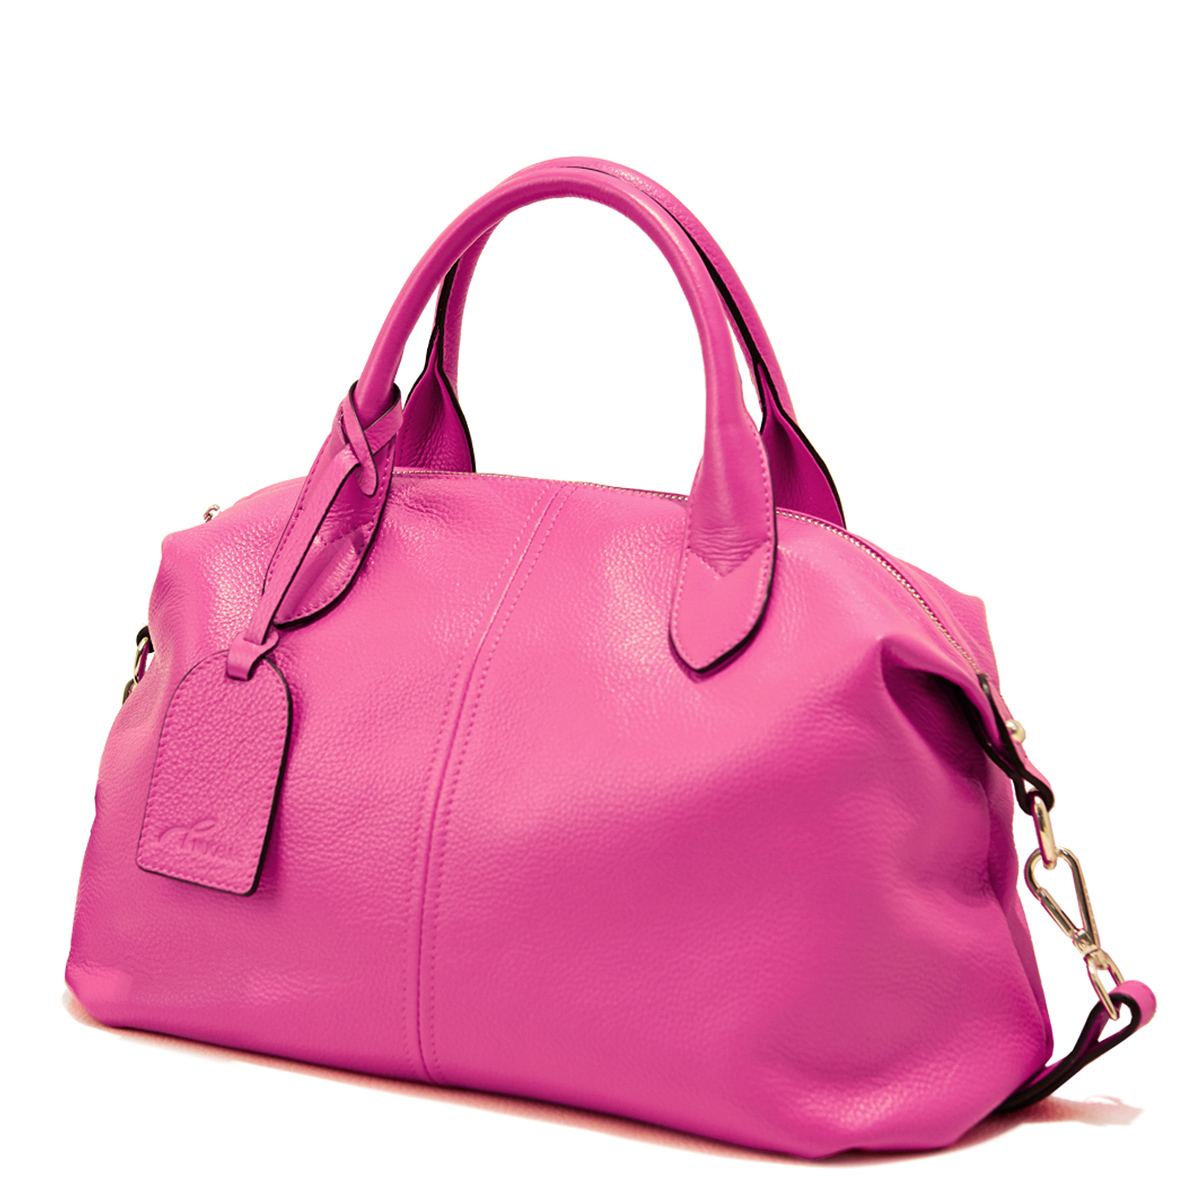 Fashion latest style NUCELLE Top high Genuine leather women bag Rose red - See more at: http://www.bagtreeok.com/goods-7175.html#sthash.ZWORuzuI.dpuf